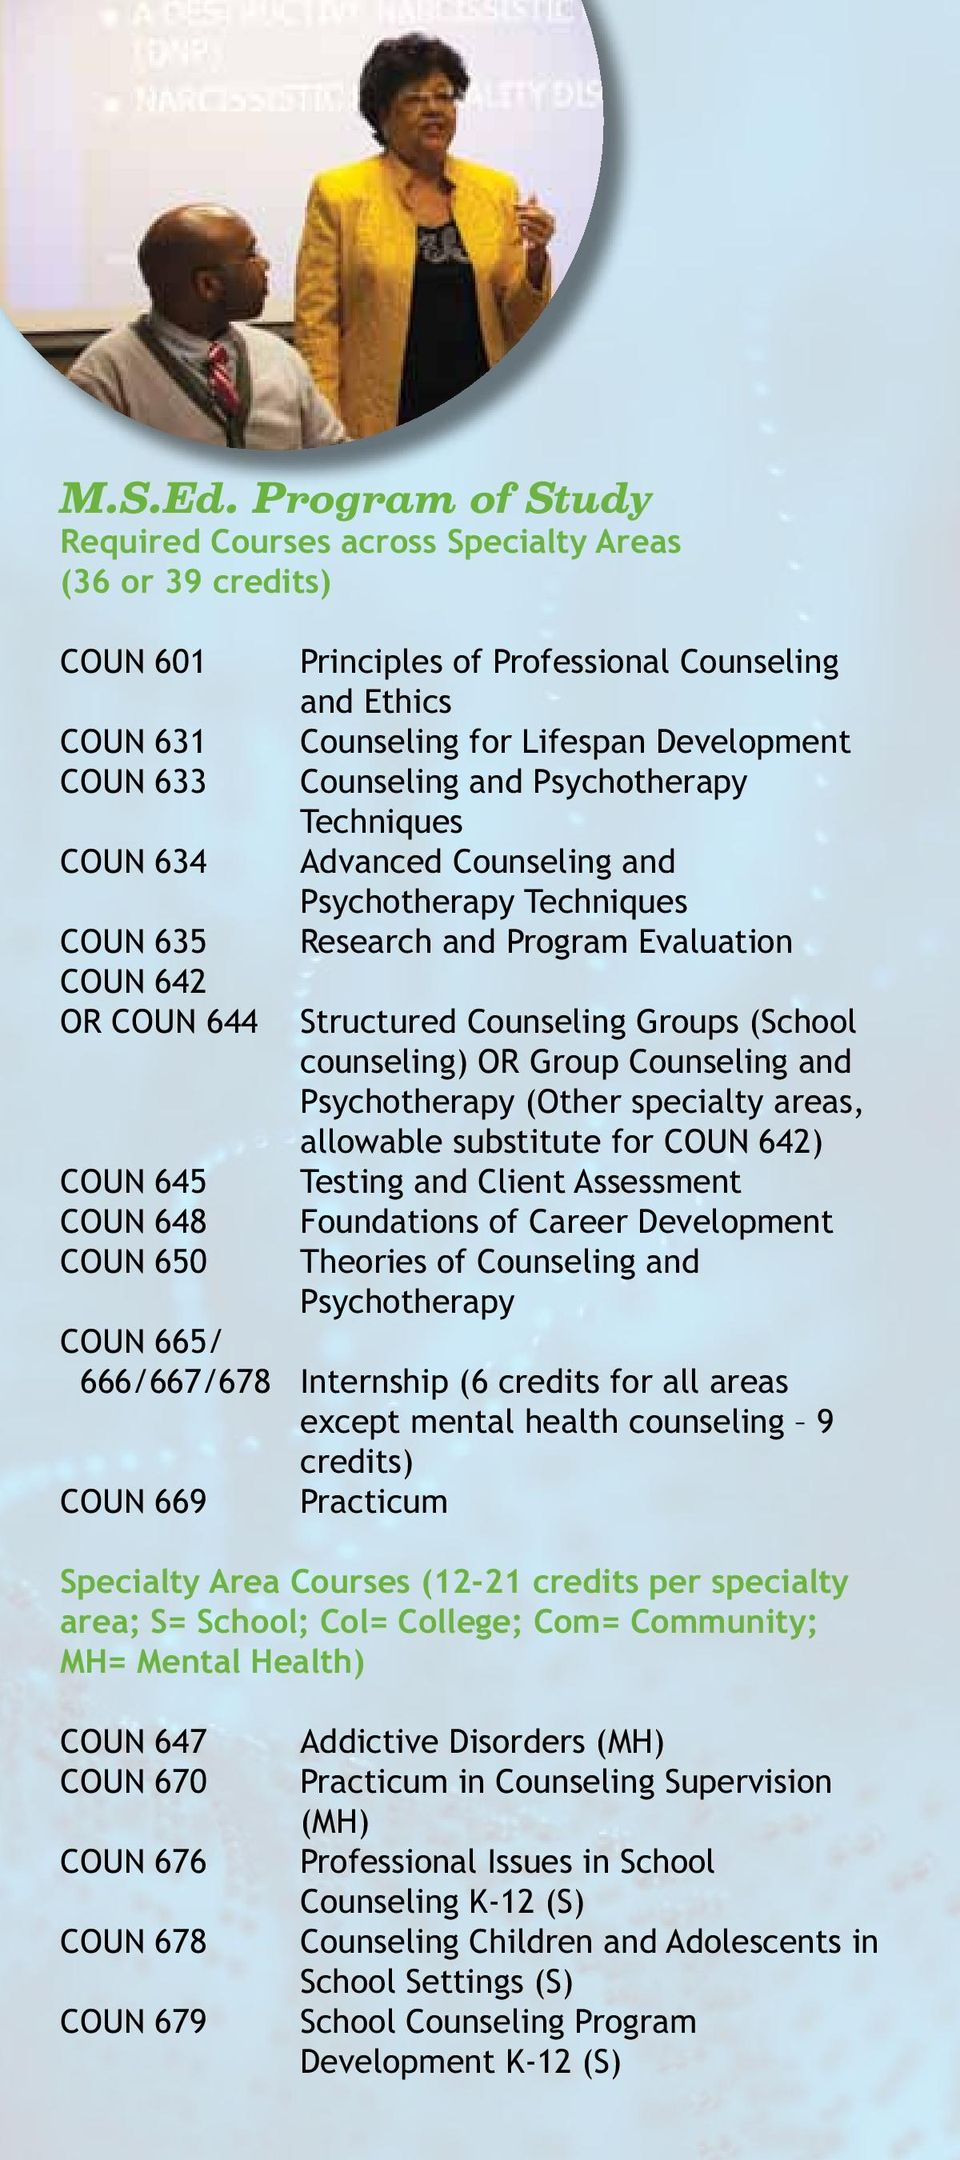 Counseling and Ethics Counseling for Lifespan Development Counseling and Psychotherapy Techniques Advanced Counseling and Psychotherapy Techniques Research and Program Evaluation Structured